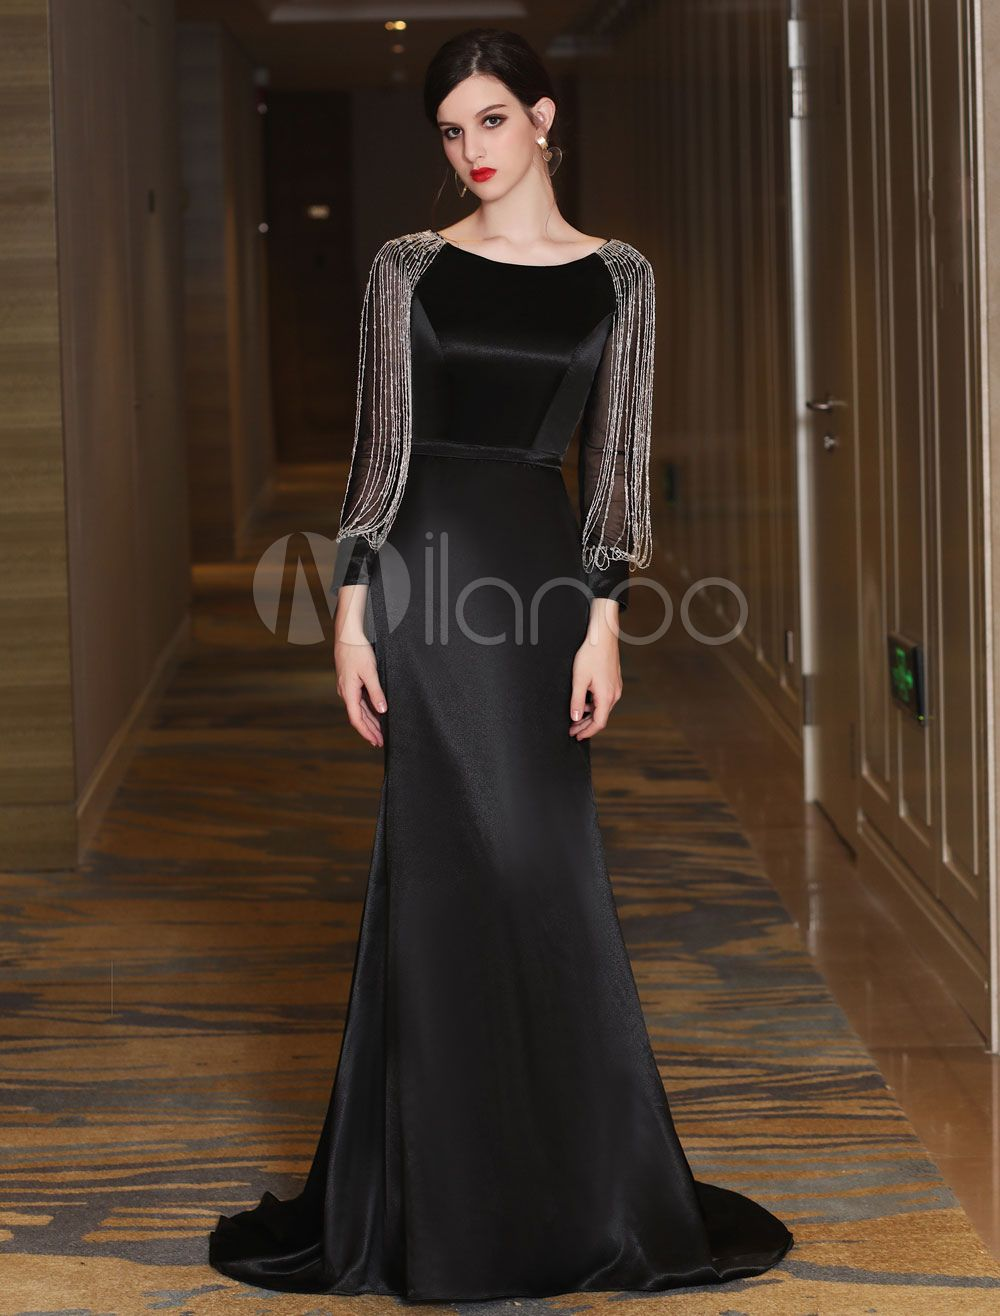 Black Evening Dresses Luxury Mermaid Mother Dress Long Sleeve Chains Beading Formal Occasion Dresses With Train